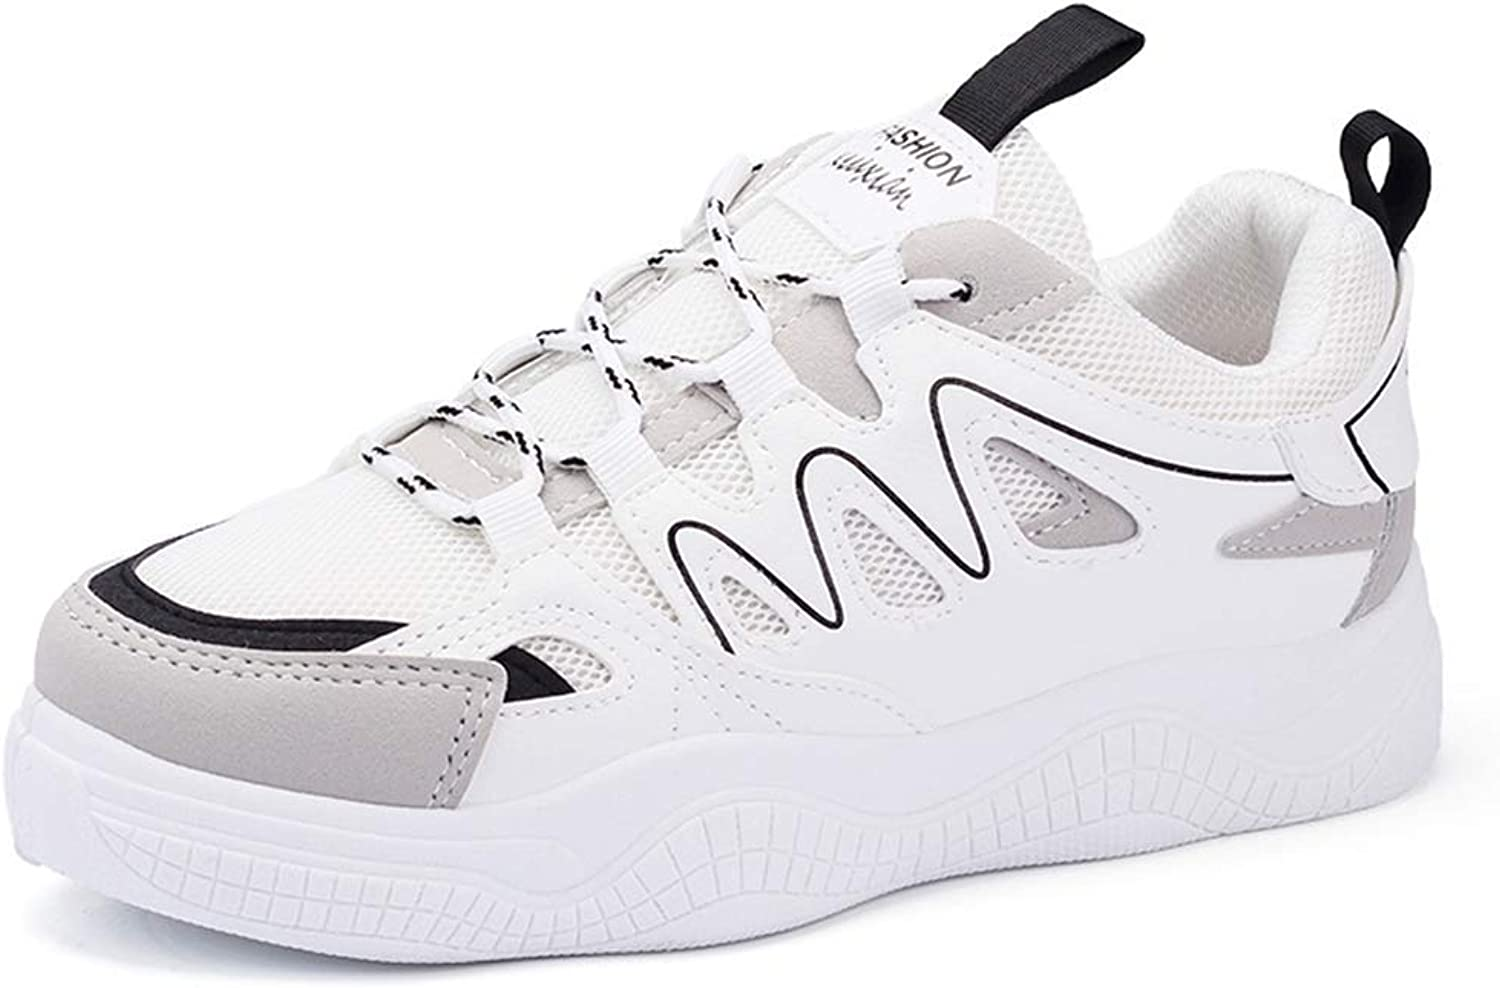 Wallhewb Women Breathable Mesh Vulcanize shoes Female Fashion Platform Lace Up High Leisure Sneakers to Wear with Dresses Slip On Comfortable Girls to Wear with Jeans White 6 M US Casual shoes